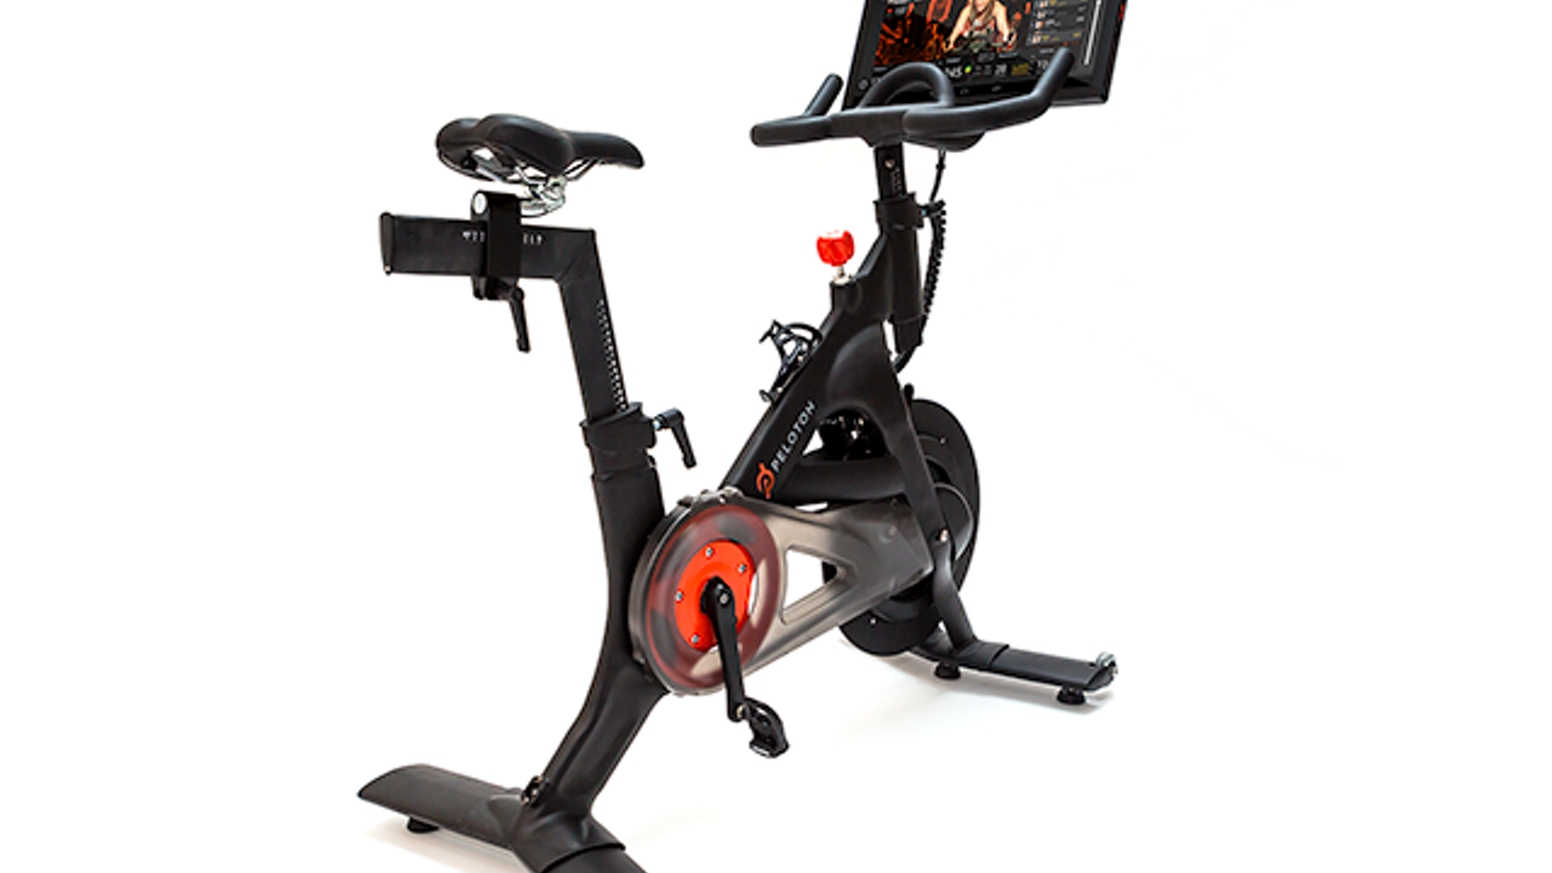 2ddc98b78c3 The Peloton Bike  Bring Home the Studio Cycling Experience by ...